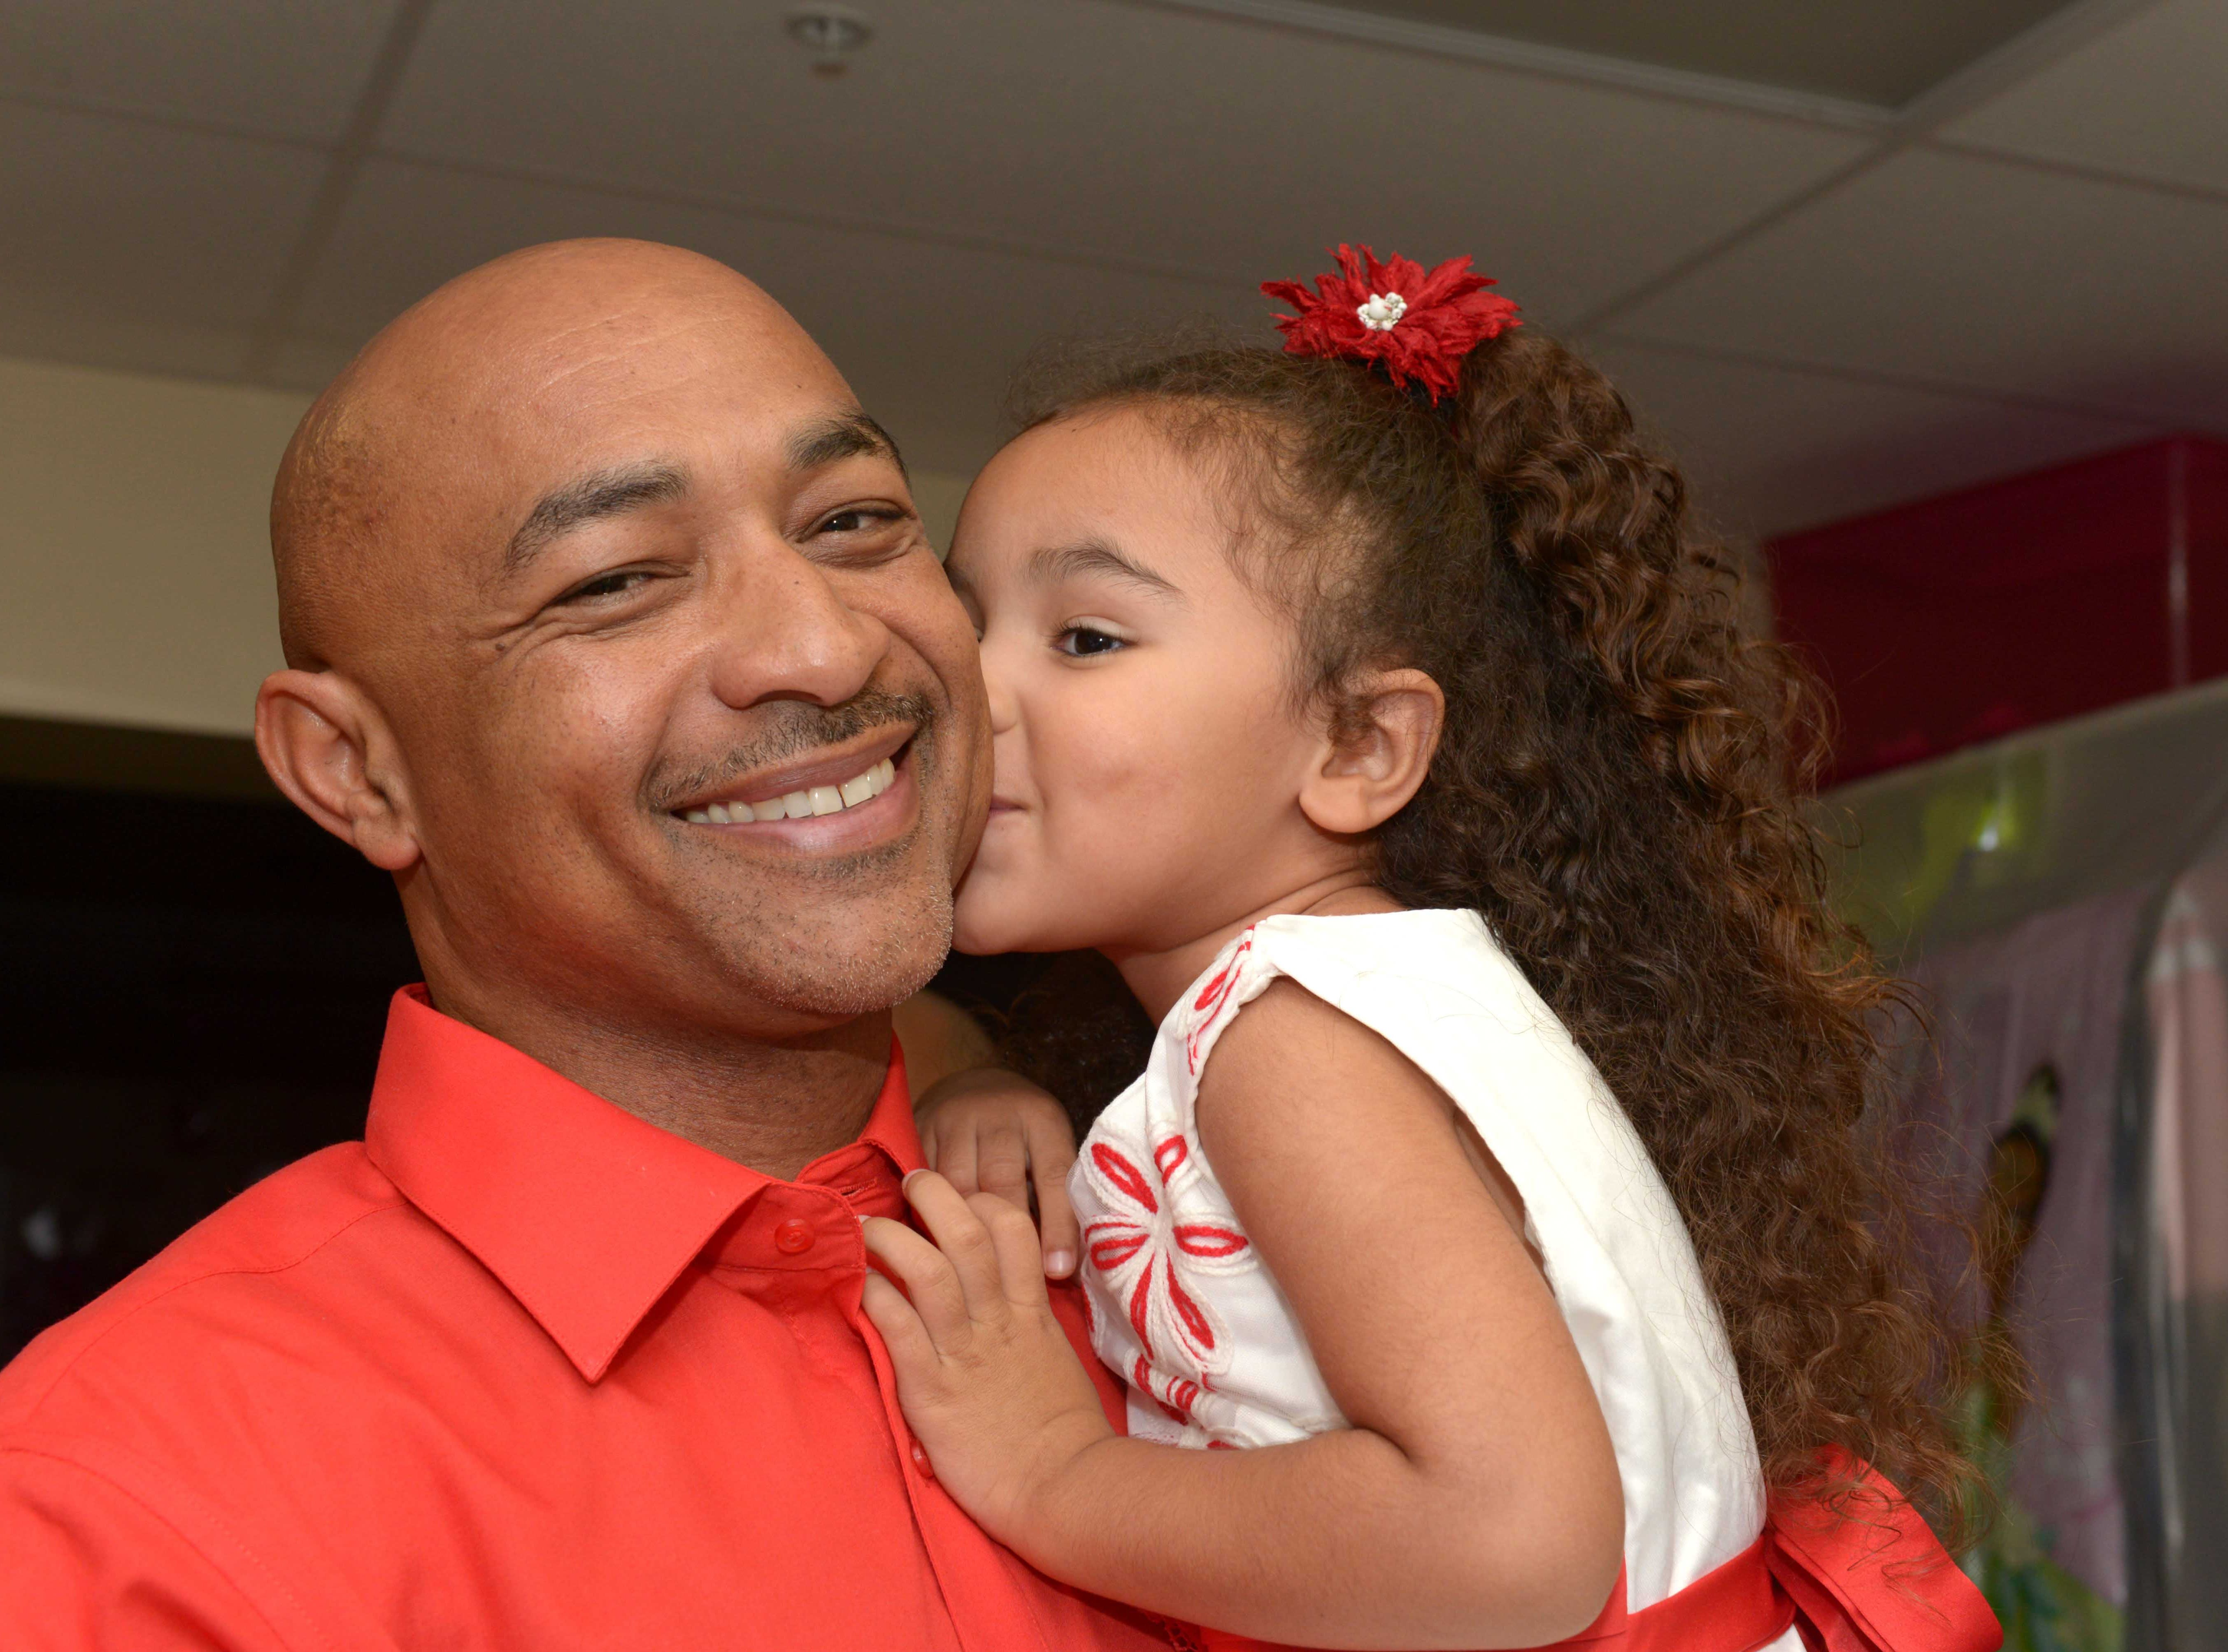 Kevin and Kallee Morgan at the Father/Daughter/Someone Special Dance at Renaissance Charter School of St. Lucie.